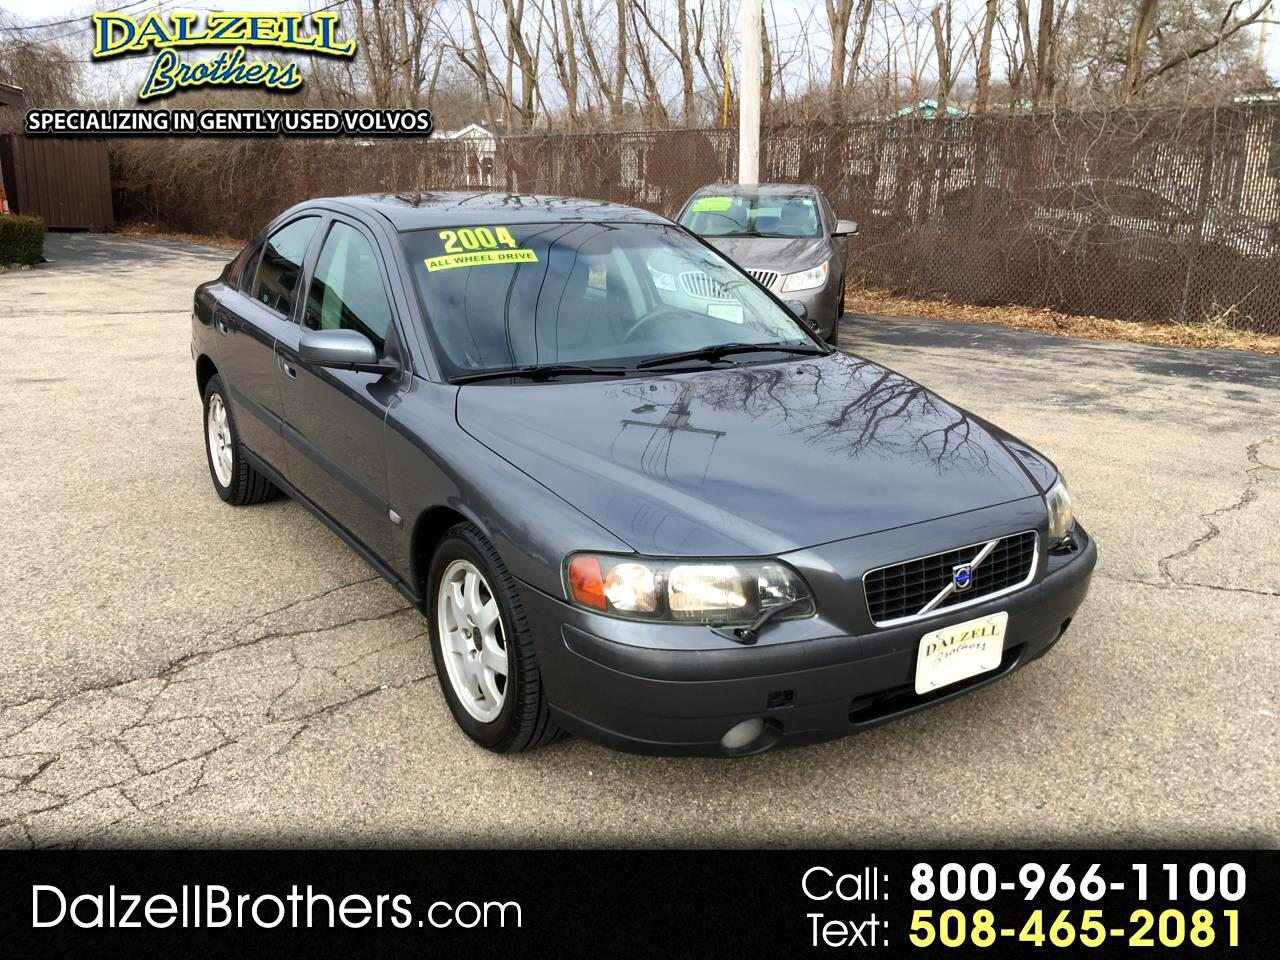 2004 Volvo S60 2.5L Turbo AWD Auto w/Sunroof